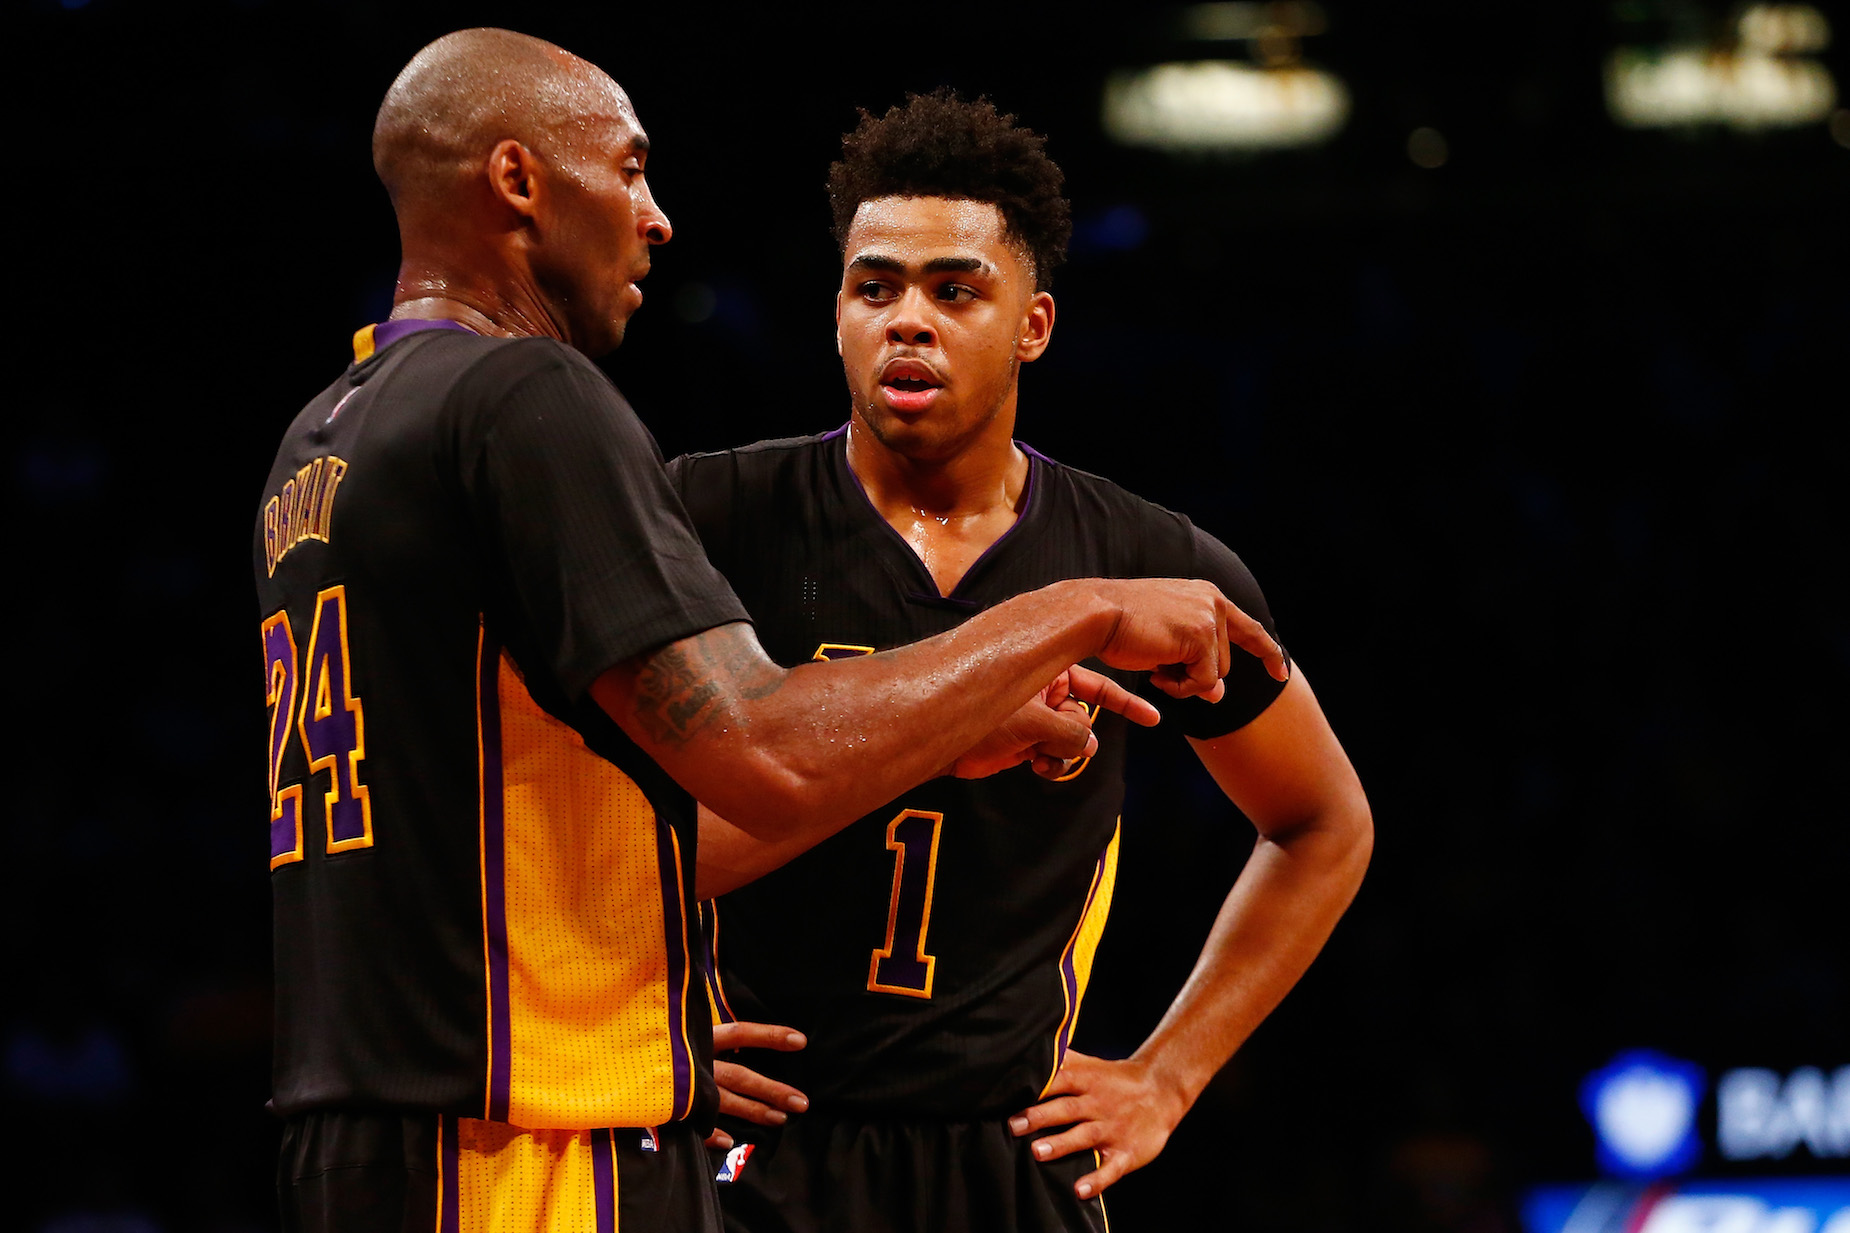 Early in his NBA career, D'Angelo Russell learned an invaluable lesson from Kobe Bryant and Damian Lillard.